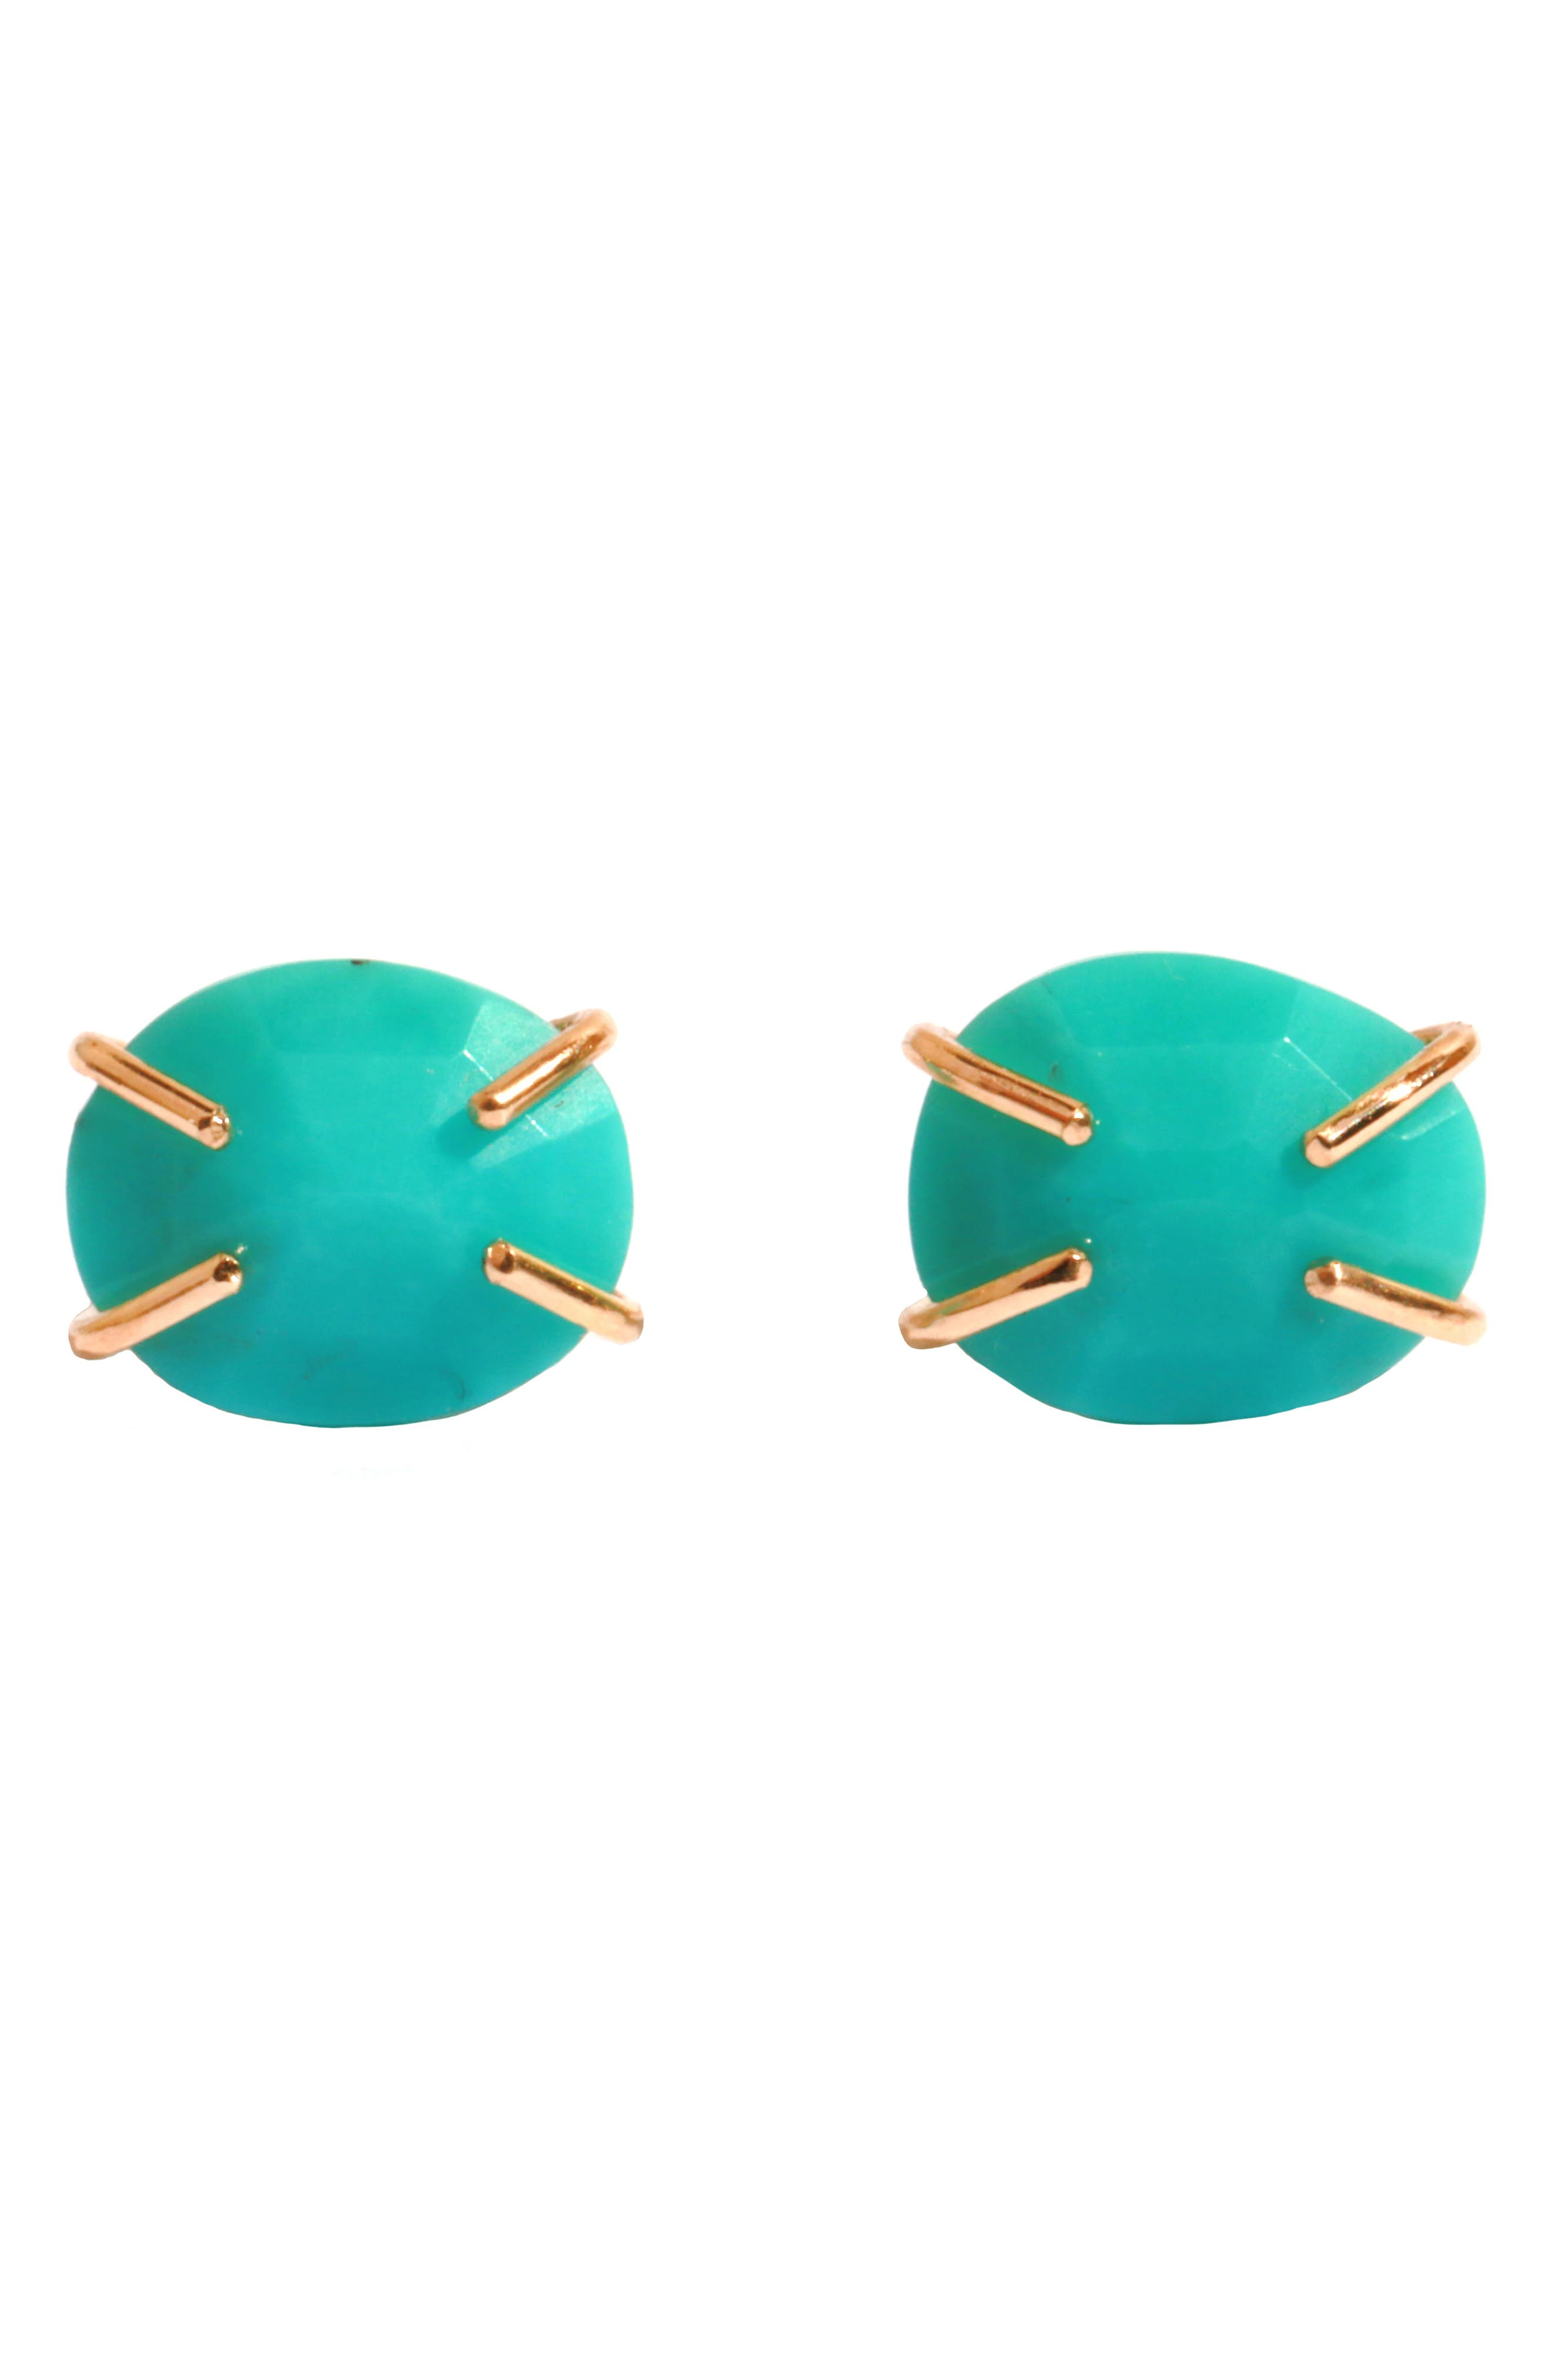 Alternate Image 1 Selected - Melissa Joy Manning Turquoise Prong Stud Earrings